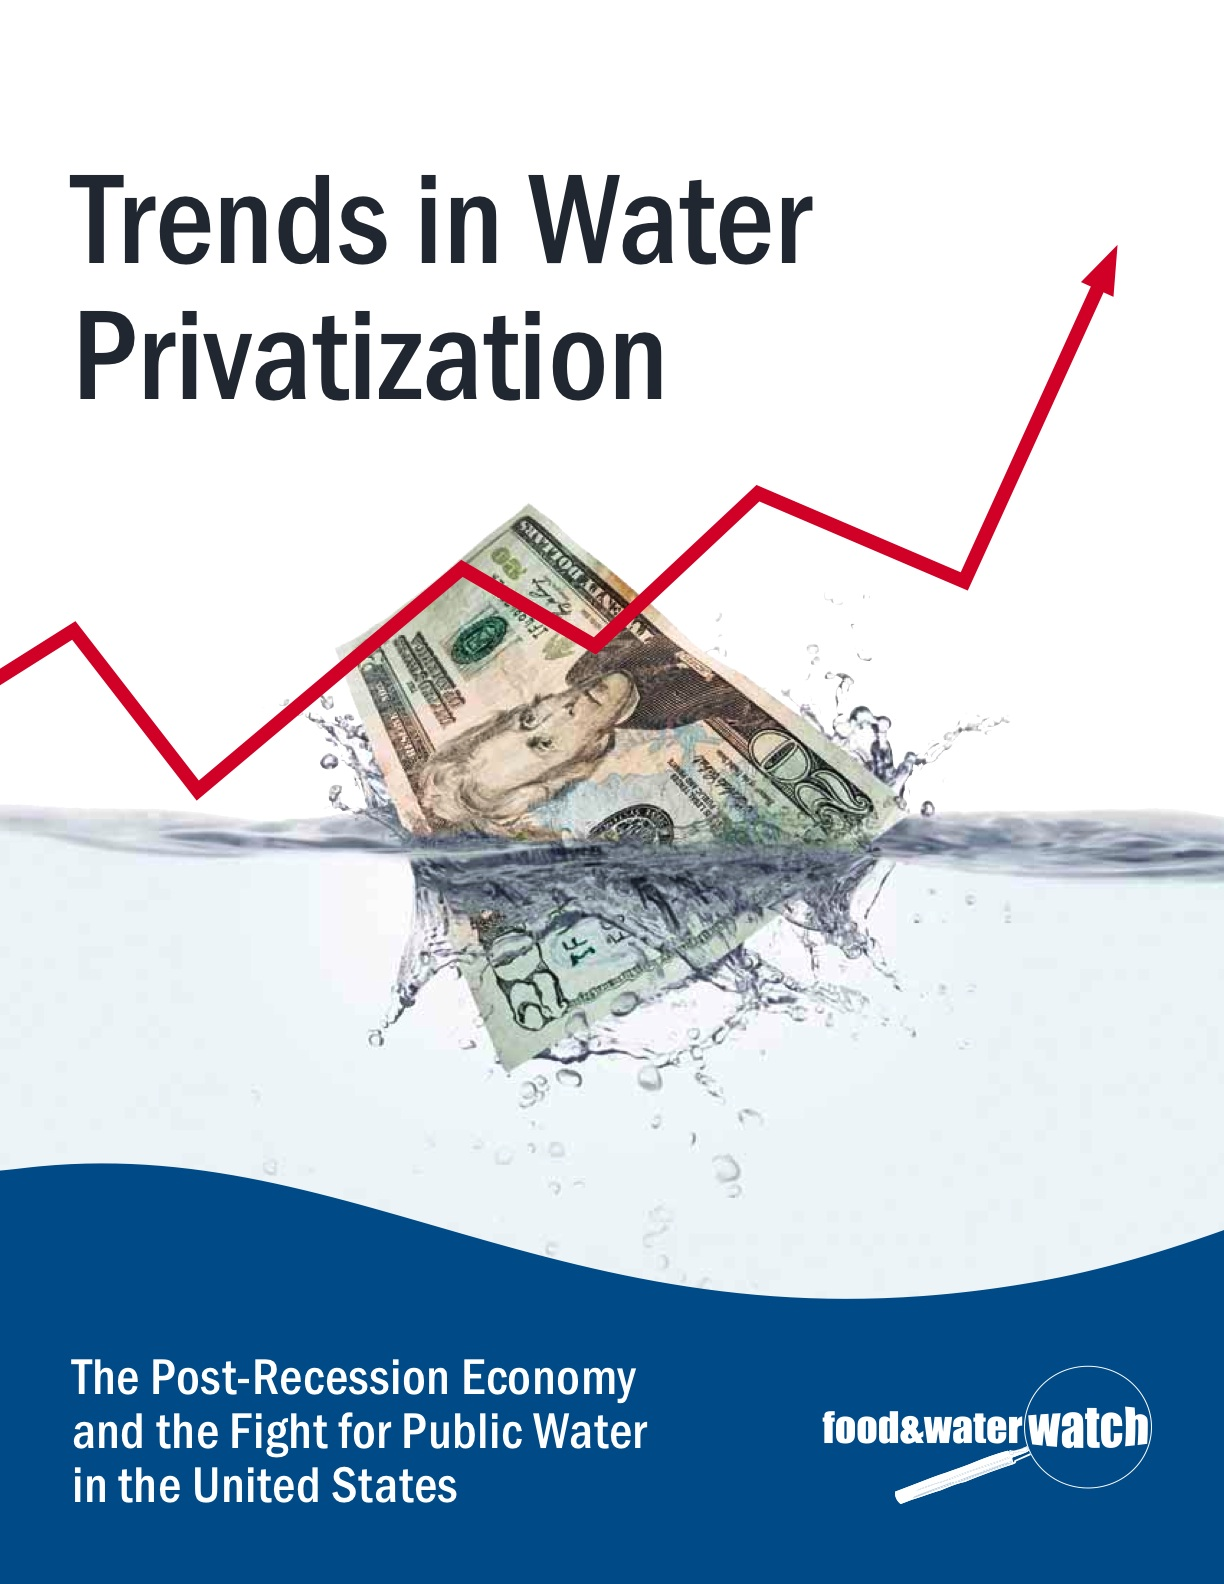 privatization of water The implications of water privatization are, however, more far-reaching than daily provision for one, while mexico has pushed its privatization legislation, countries like south africa, argentina.